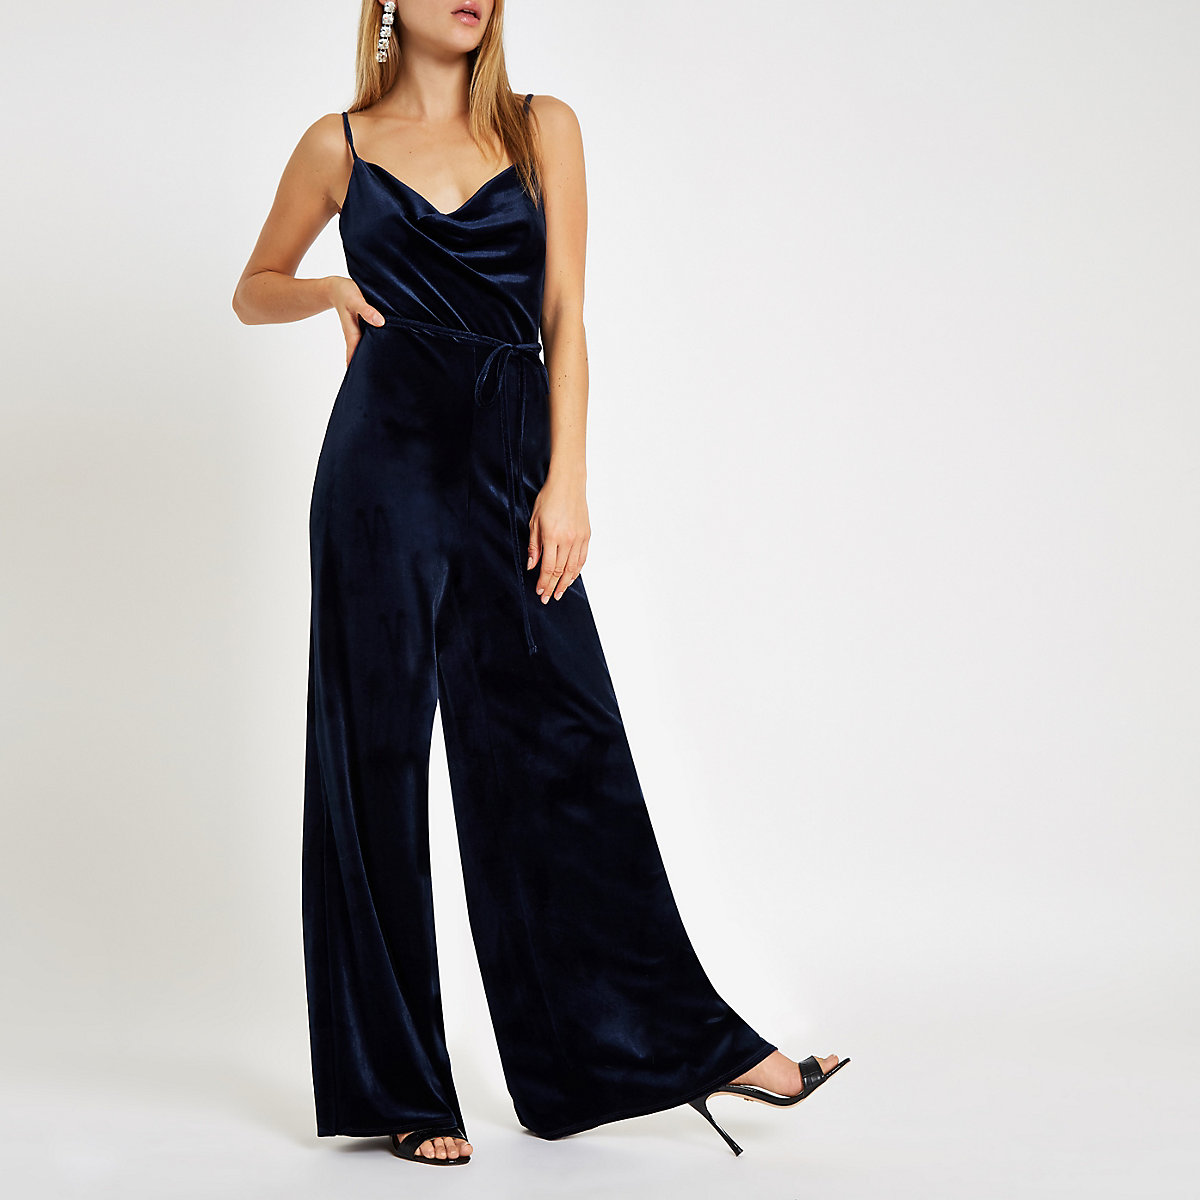 Navy velvet cowl neck wide leg jumpsuit